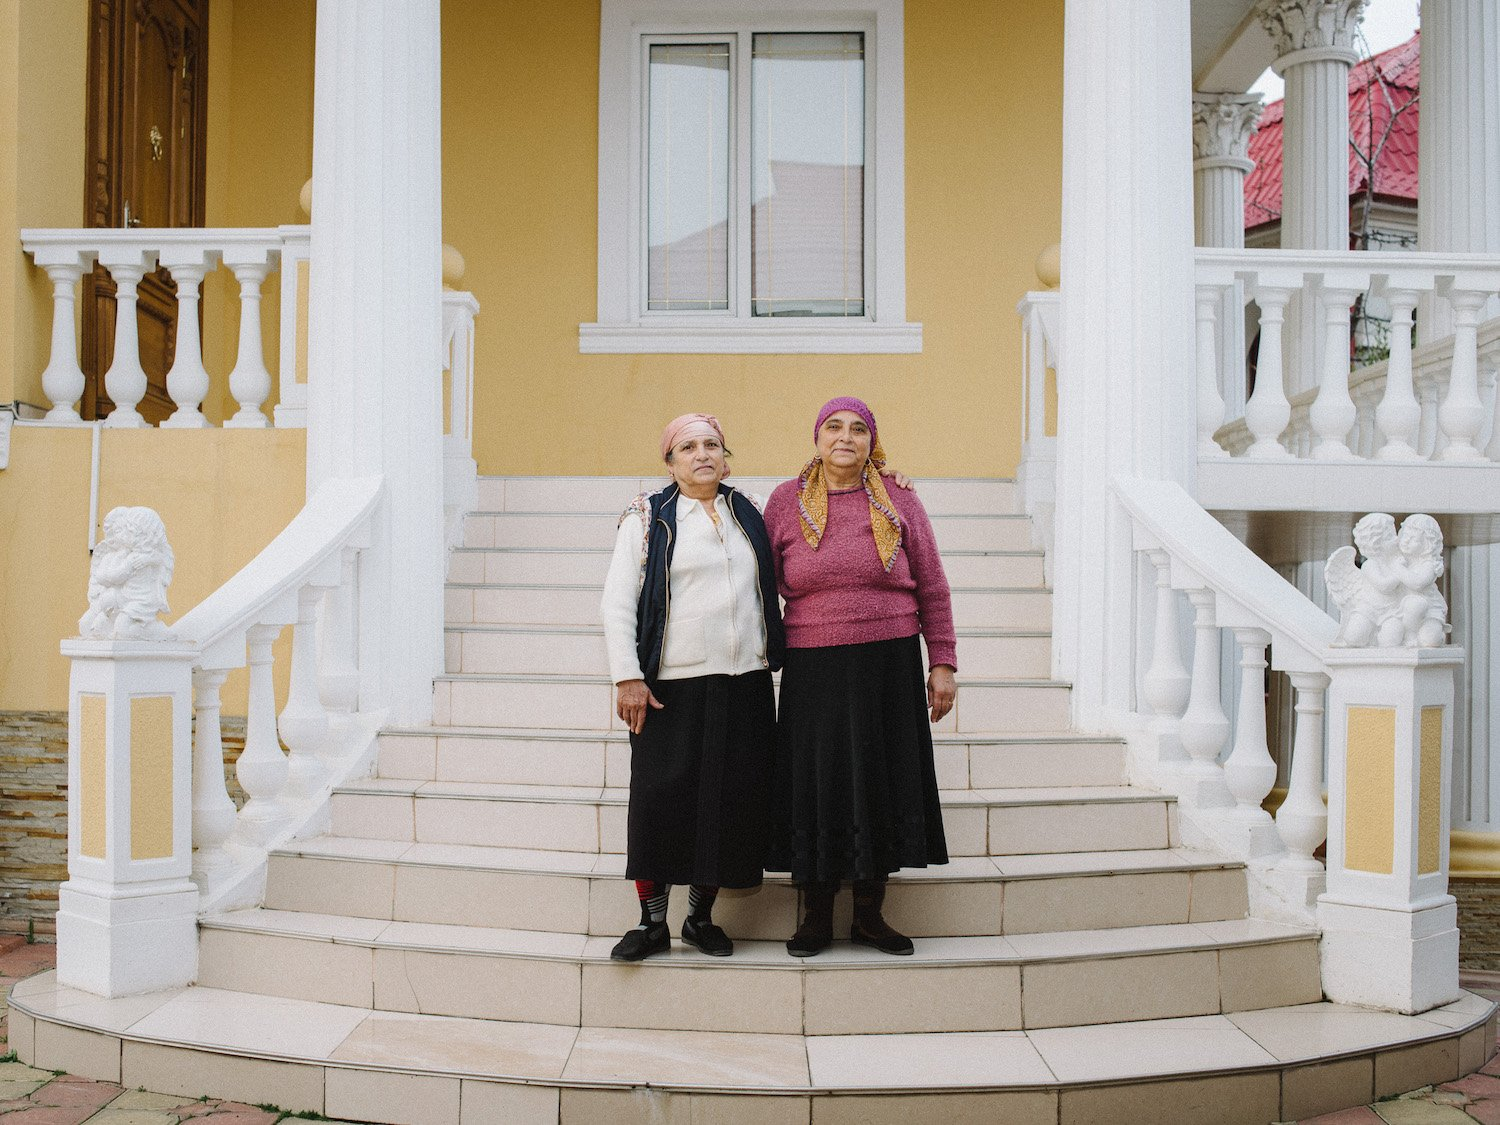 Judge Pătrunjel's (third) wife, Tatiana, and her sister, Maria, living in the same house